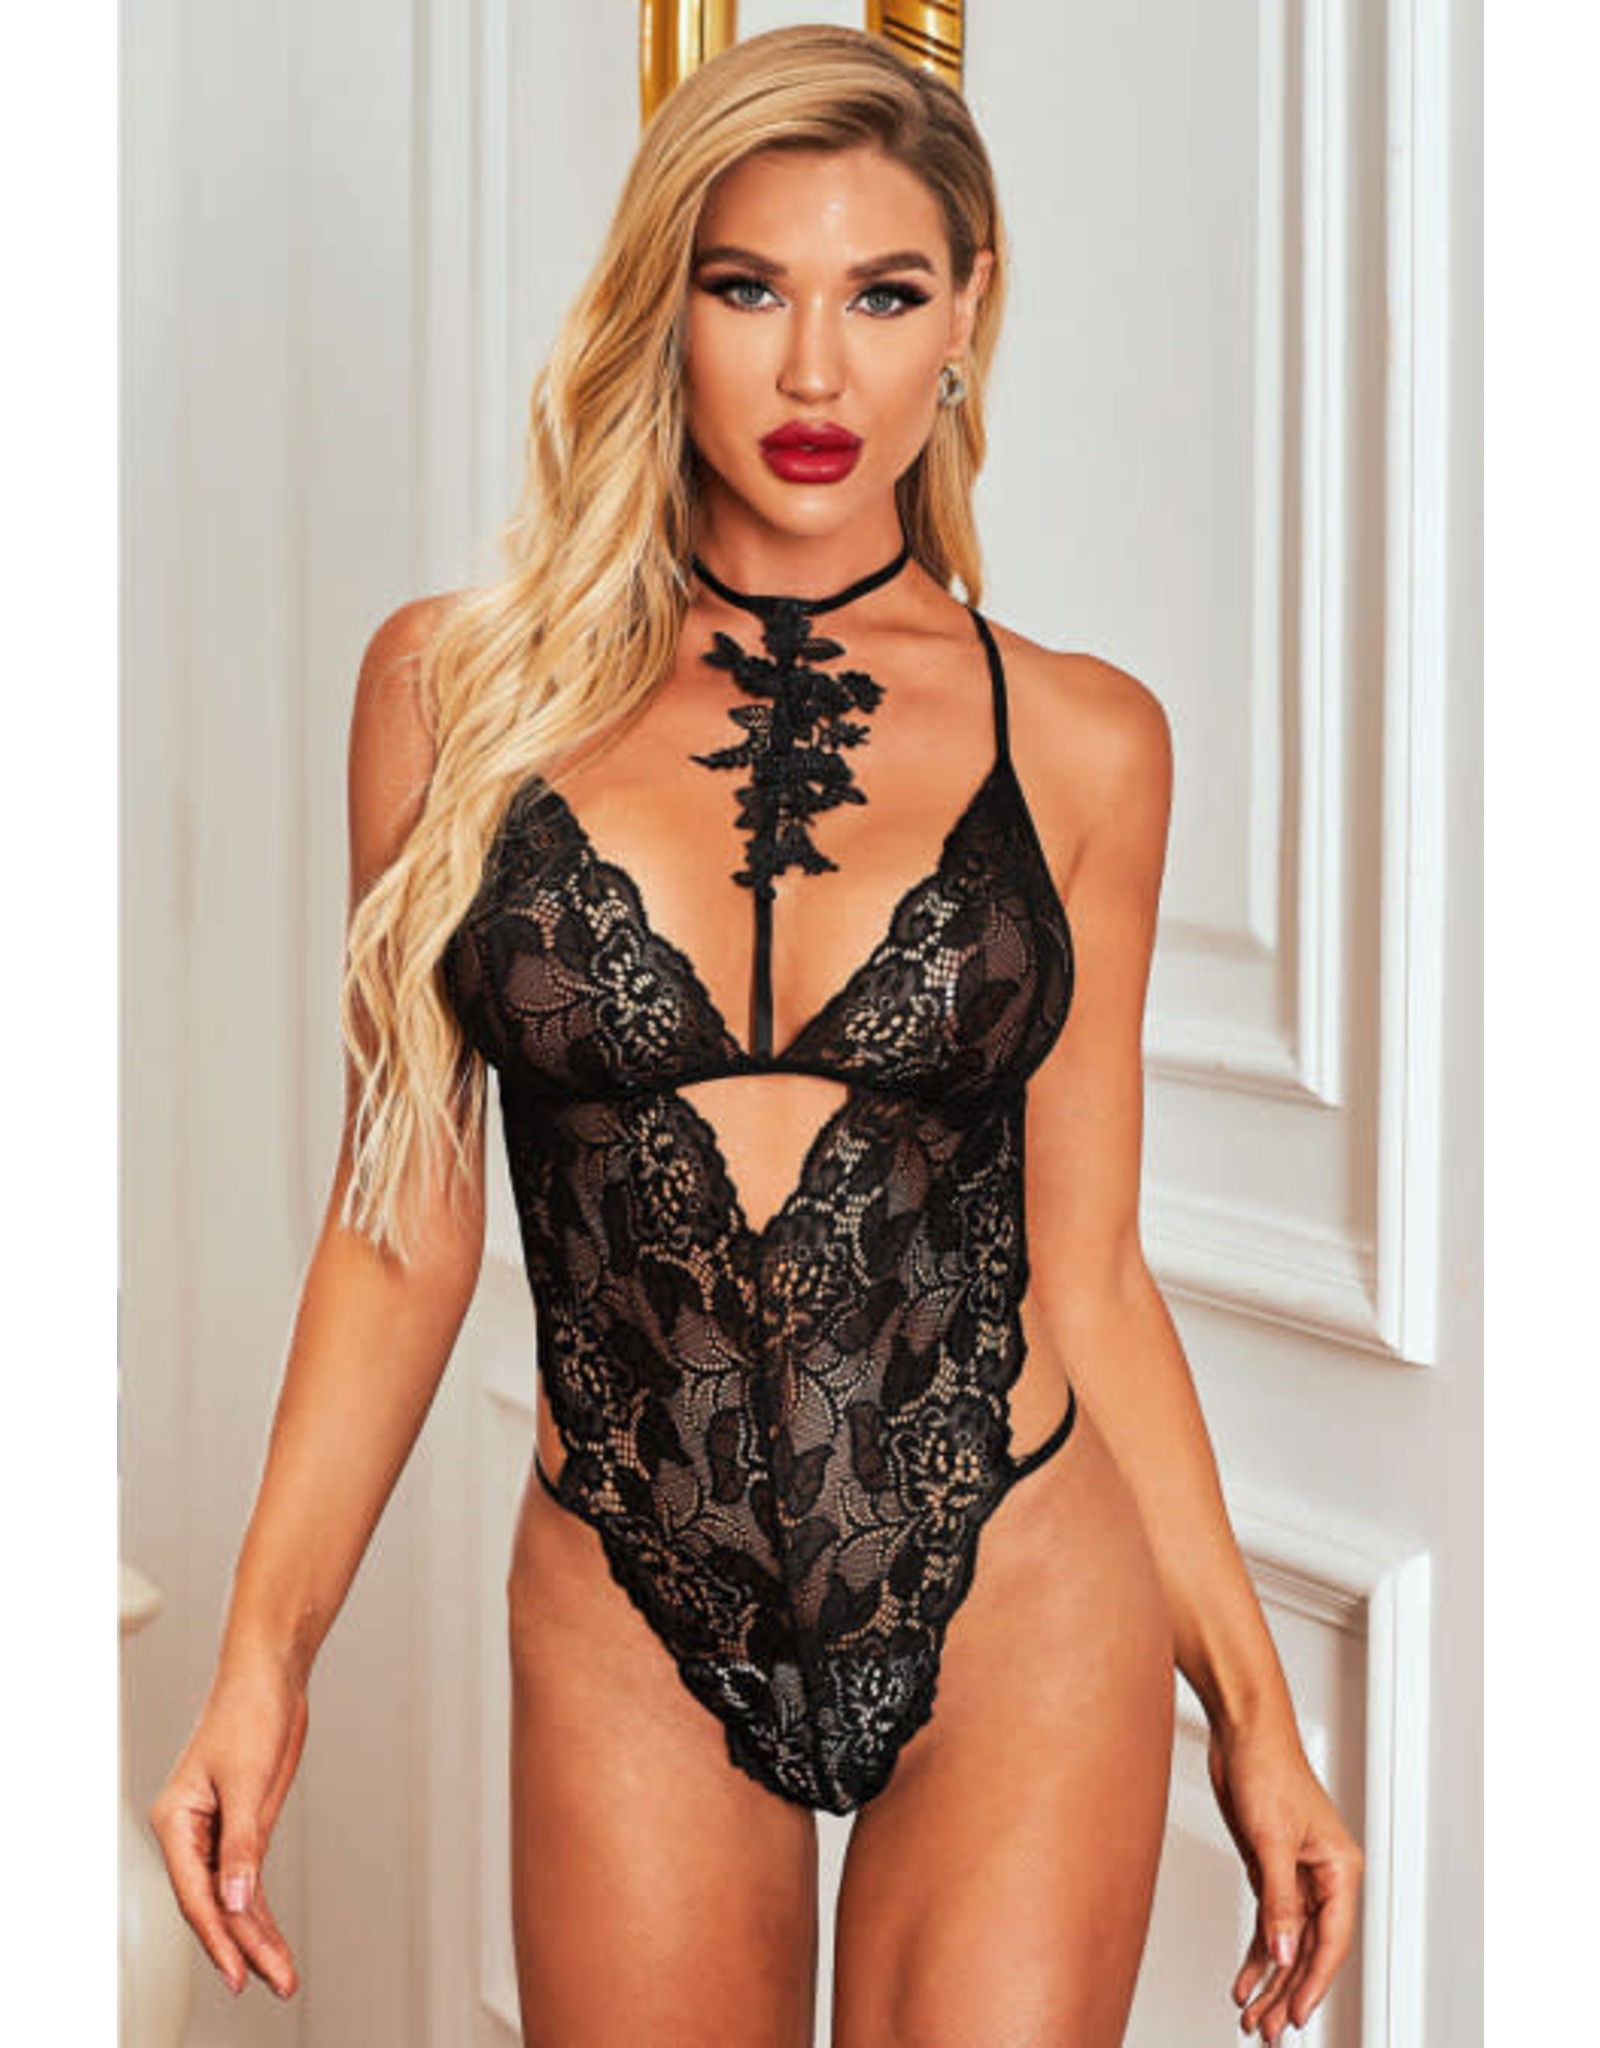 BLACK ROSES FALL LACE TEDDY - (US 4-6)S